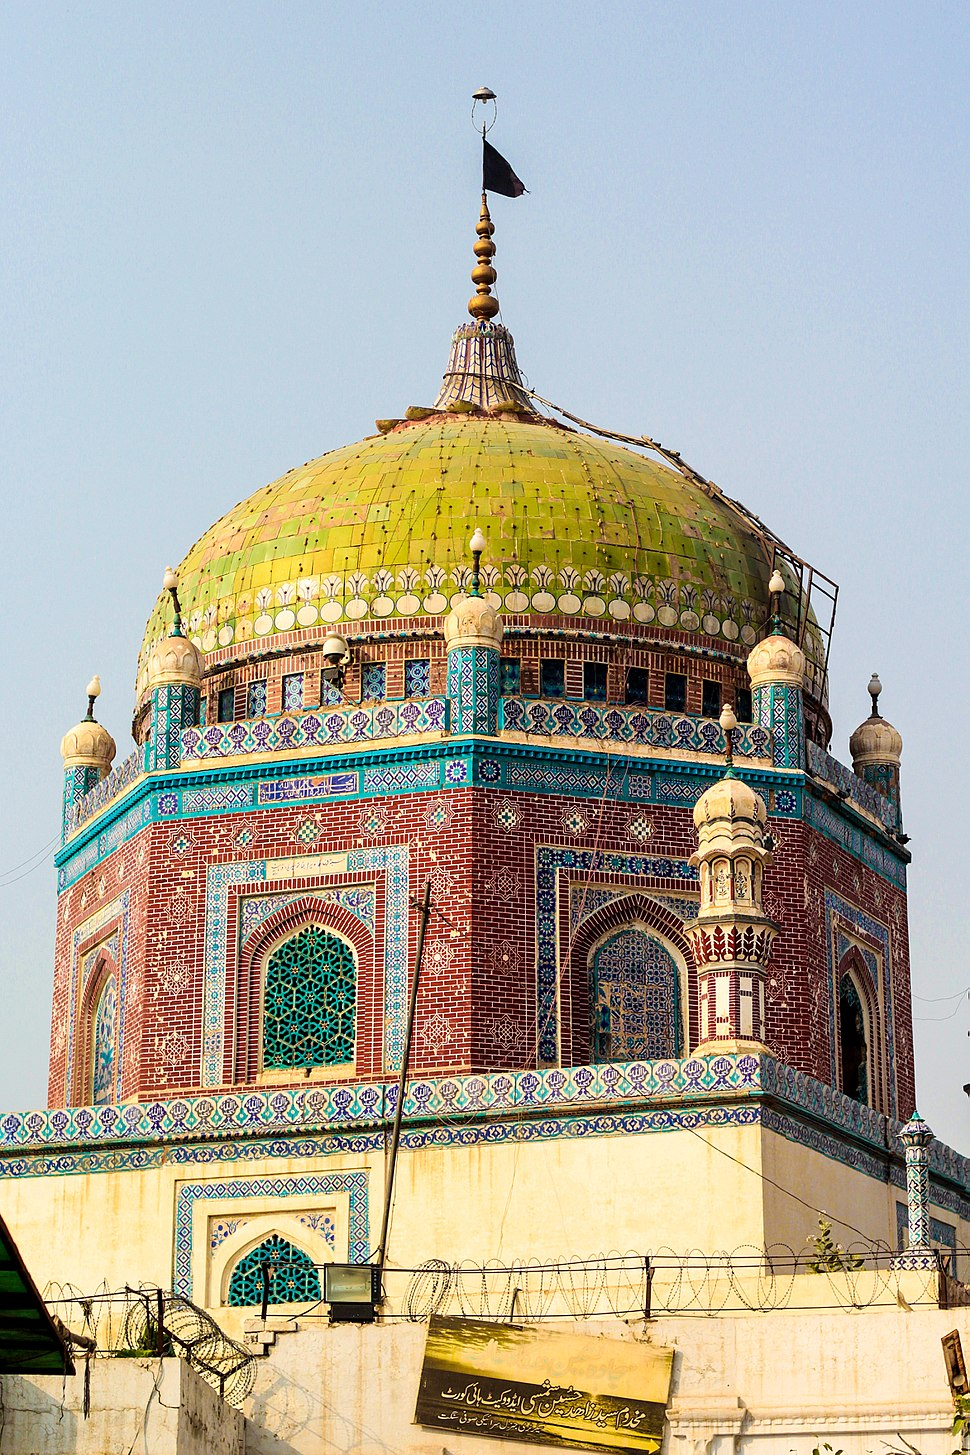 Shrine of Hazrat Shah Shams ud din Sabzwari